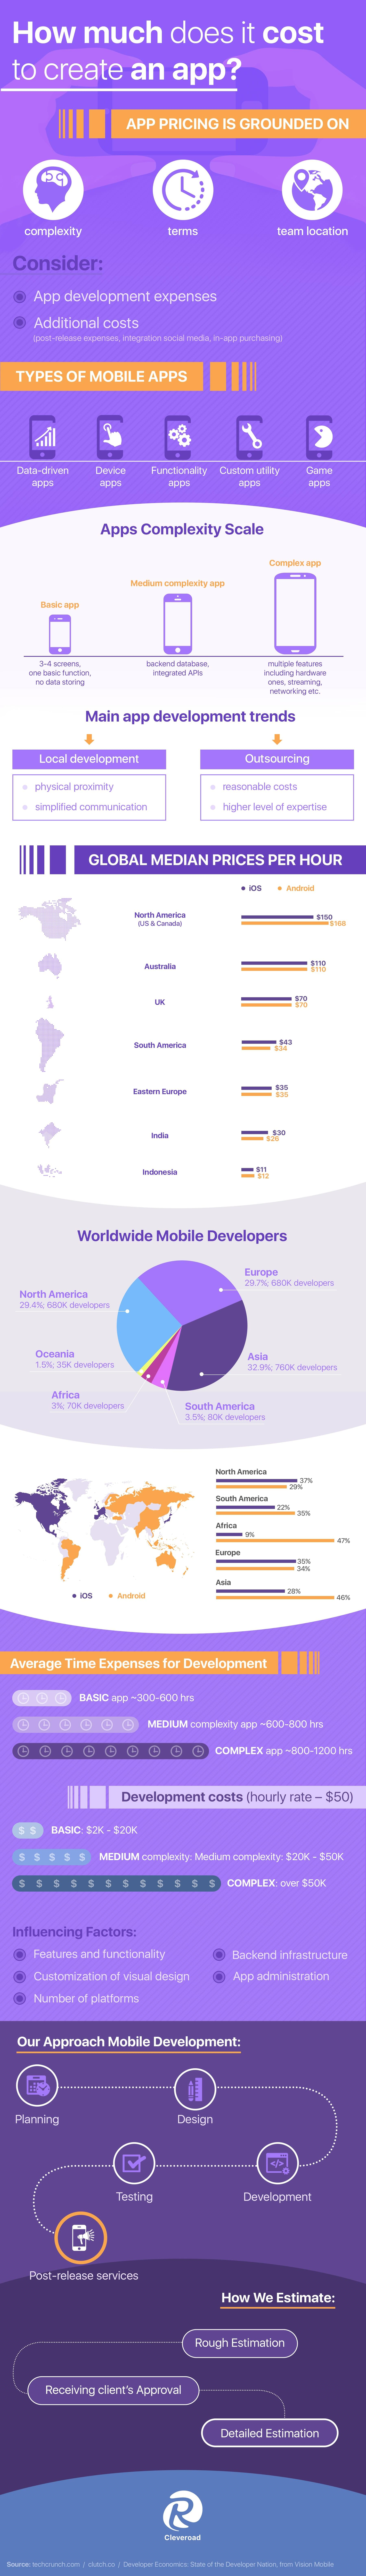 How much does it cost to make an app in 2020? | App, Build ...